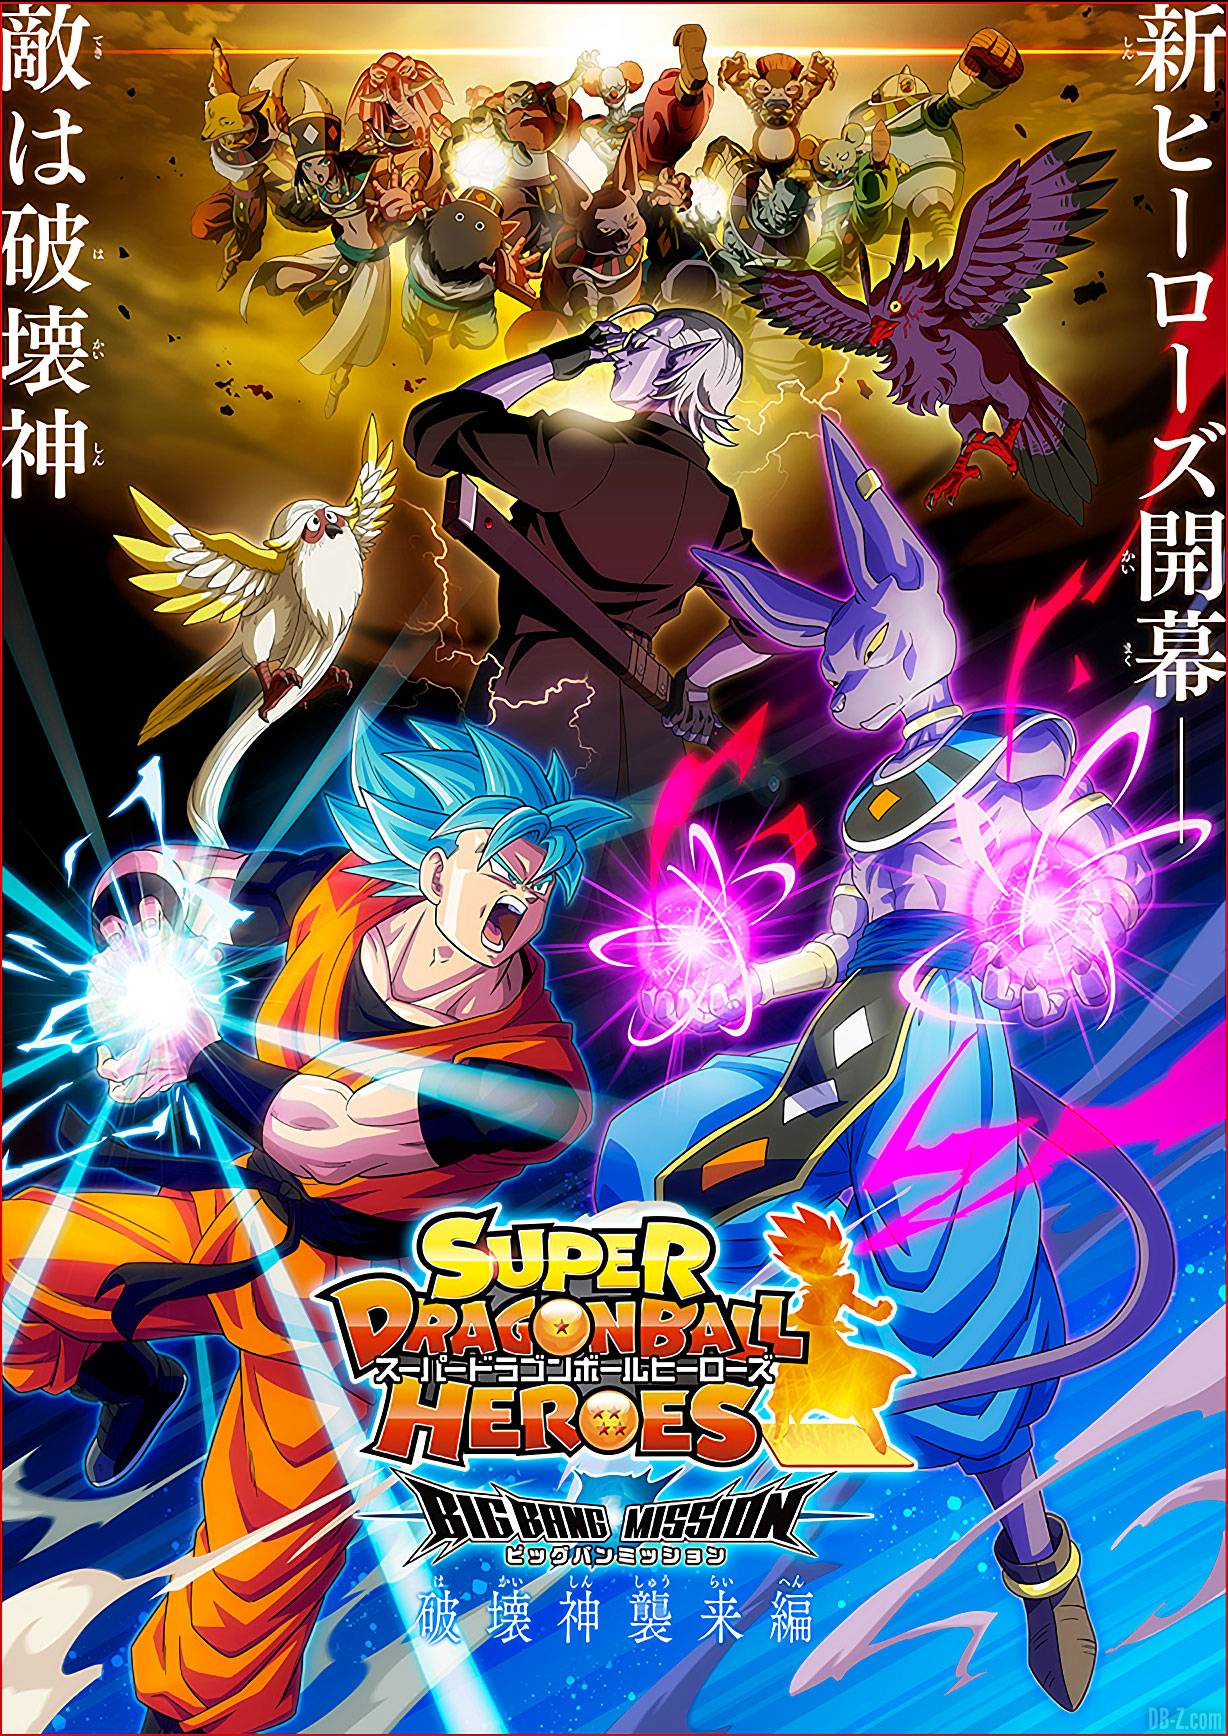 Super Dragon Ball Heroes: Big Bang Mission (Sub)